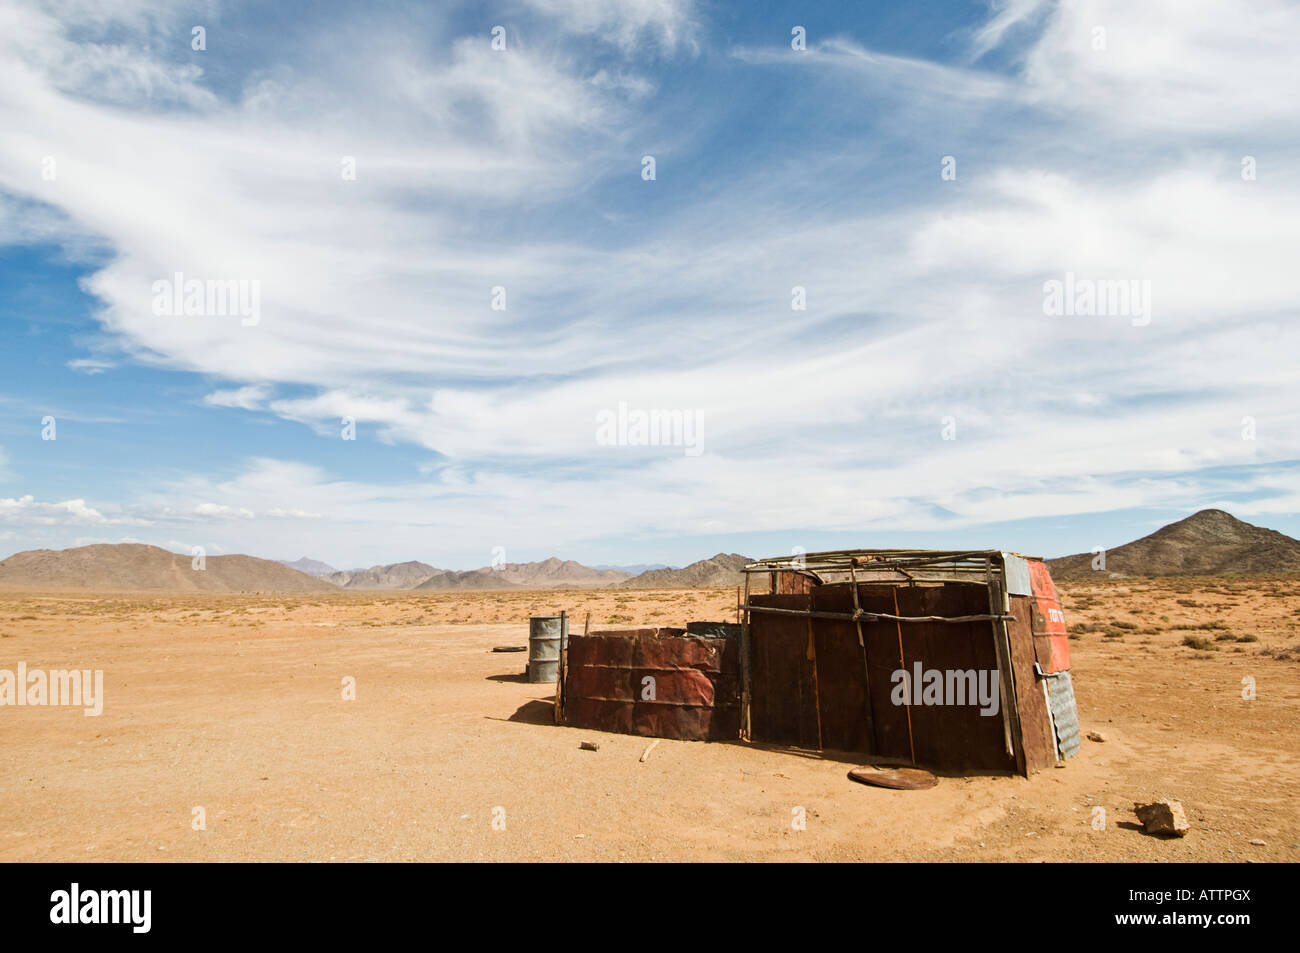 Ai Ais Richtersveld Transfrontier National Park at dried out river bed with Nama sheepherder hut - Stock Image